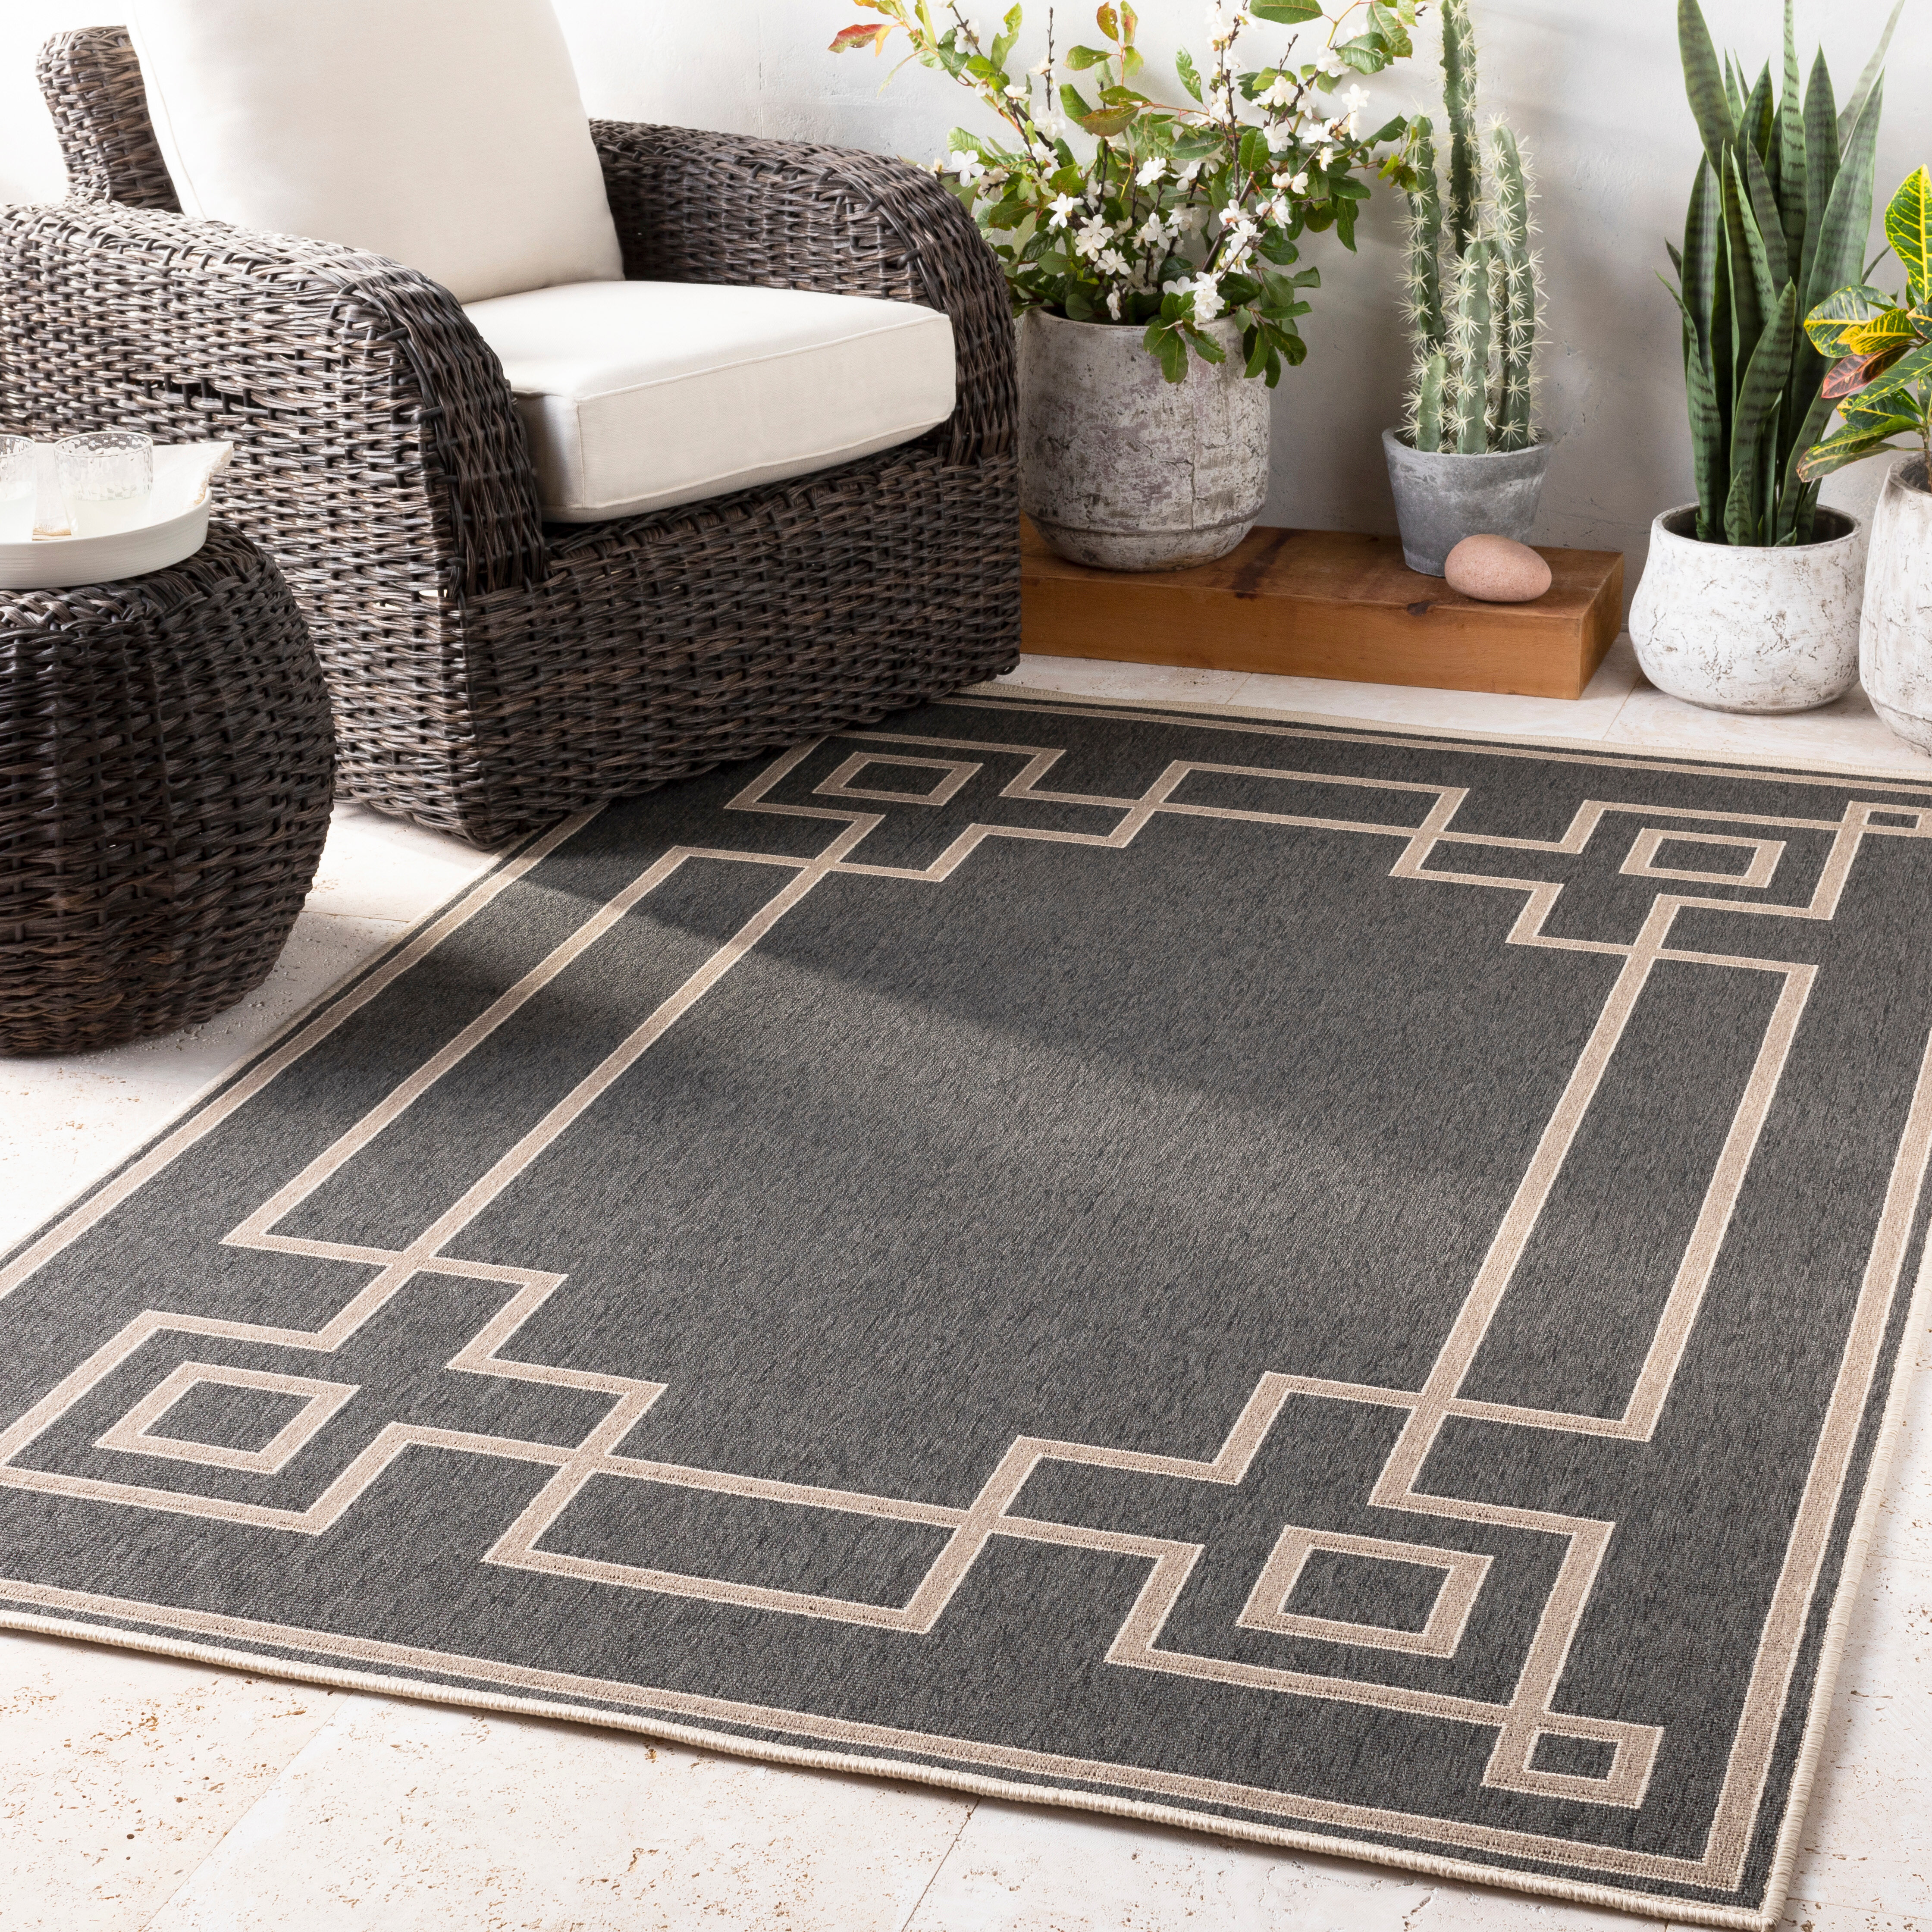 Egypt Traditional 8 X 10 Rugs You Ll Love In 2021 Wayfair